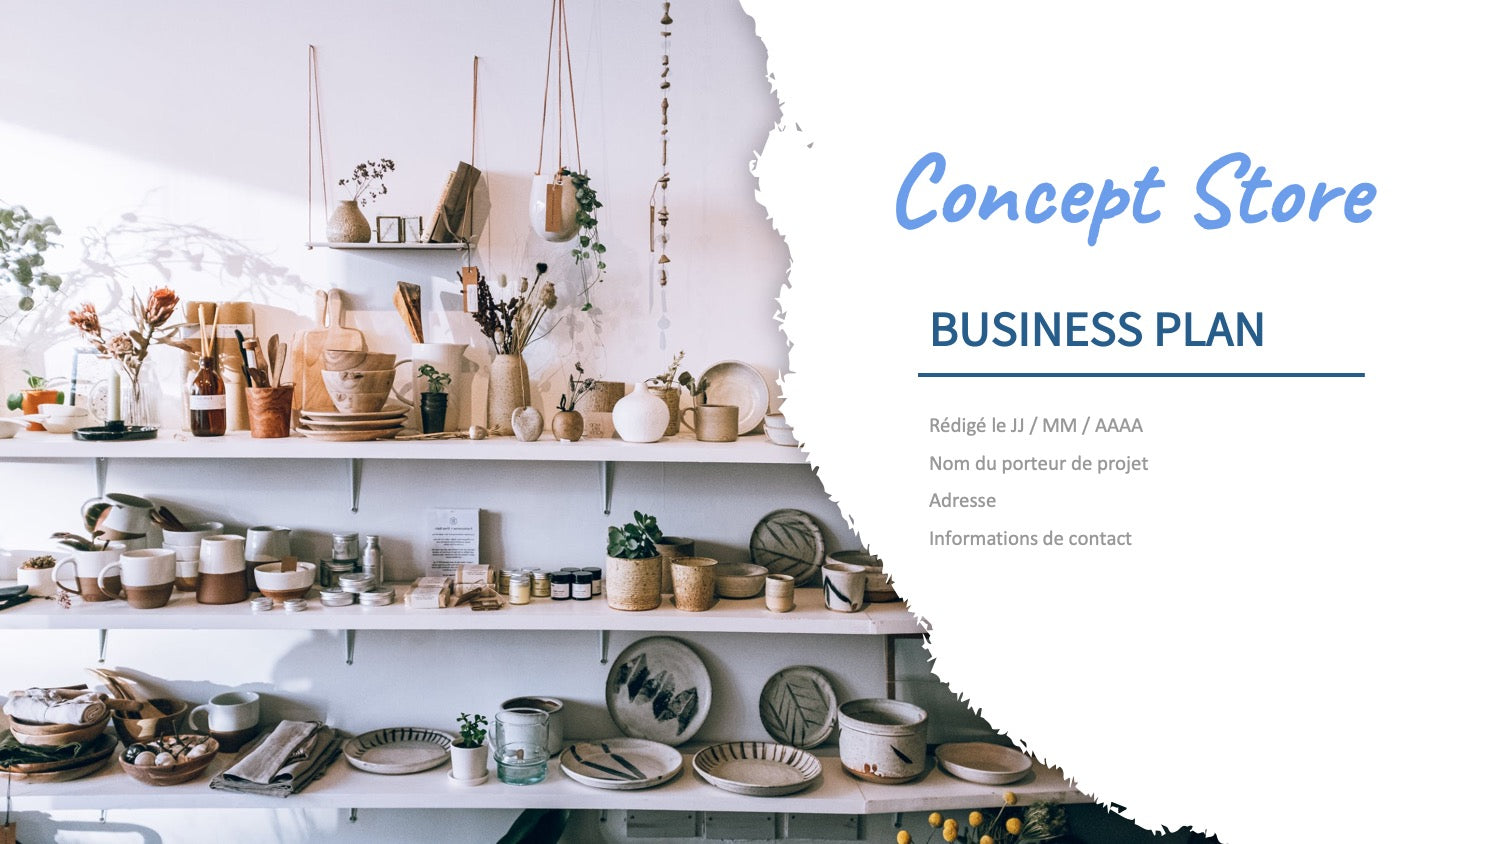 business plan concept store